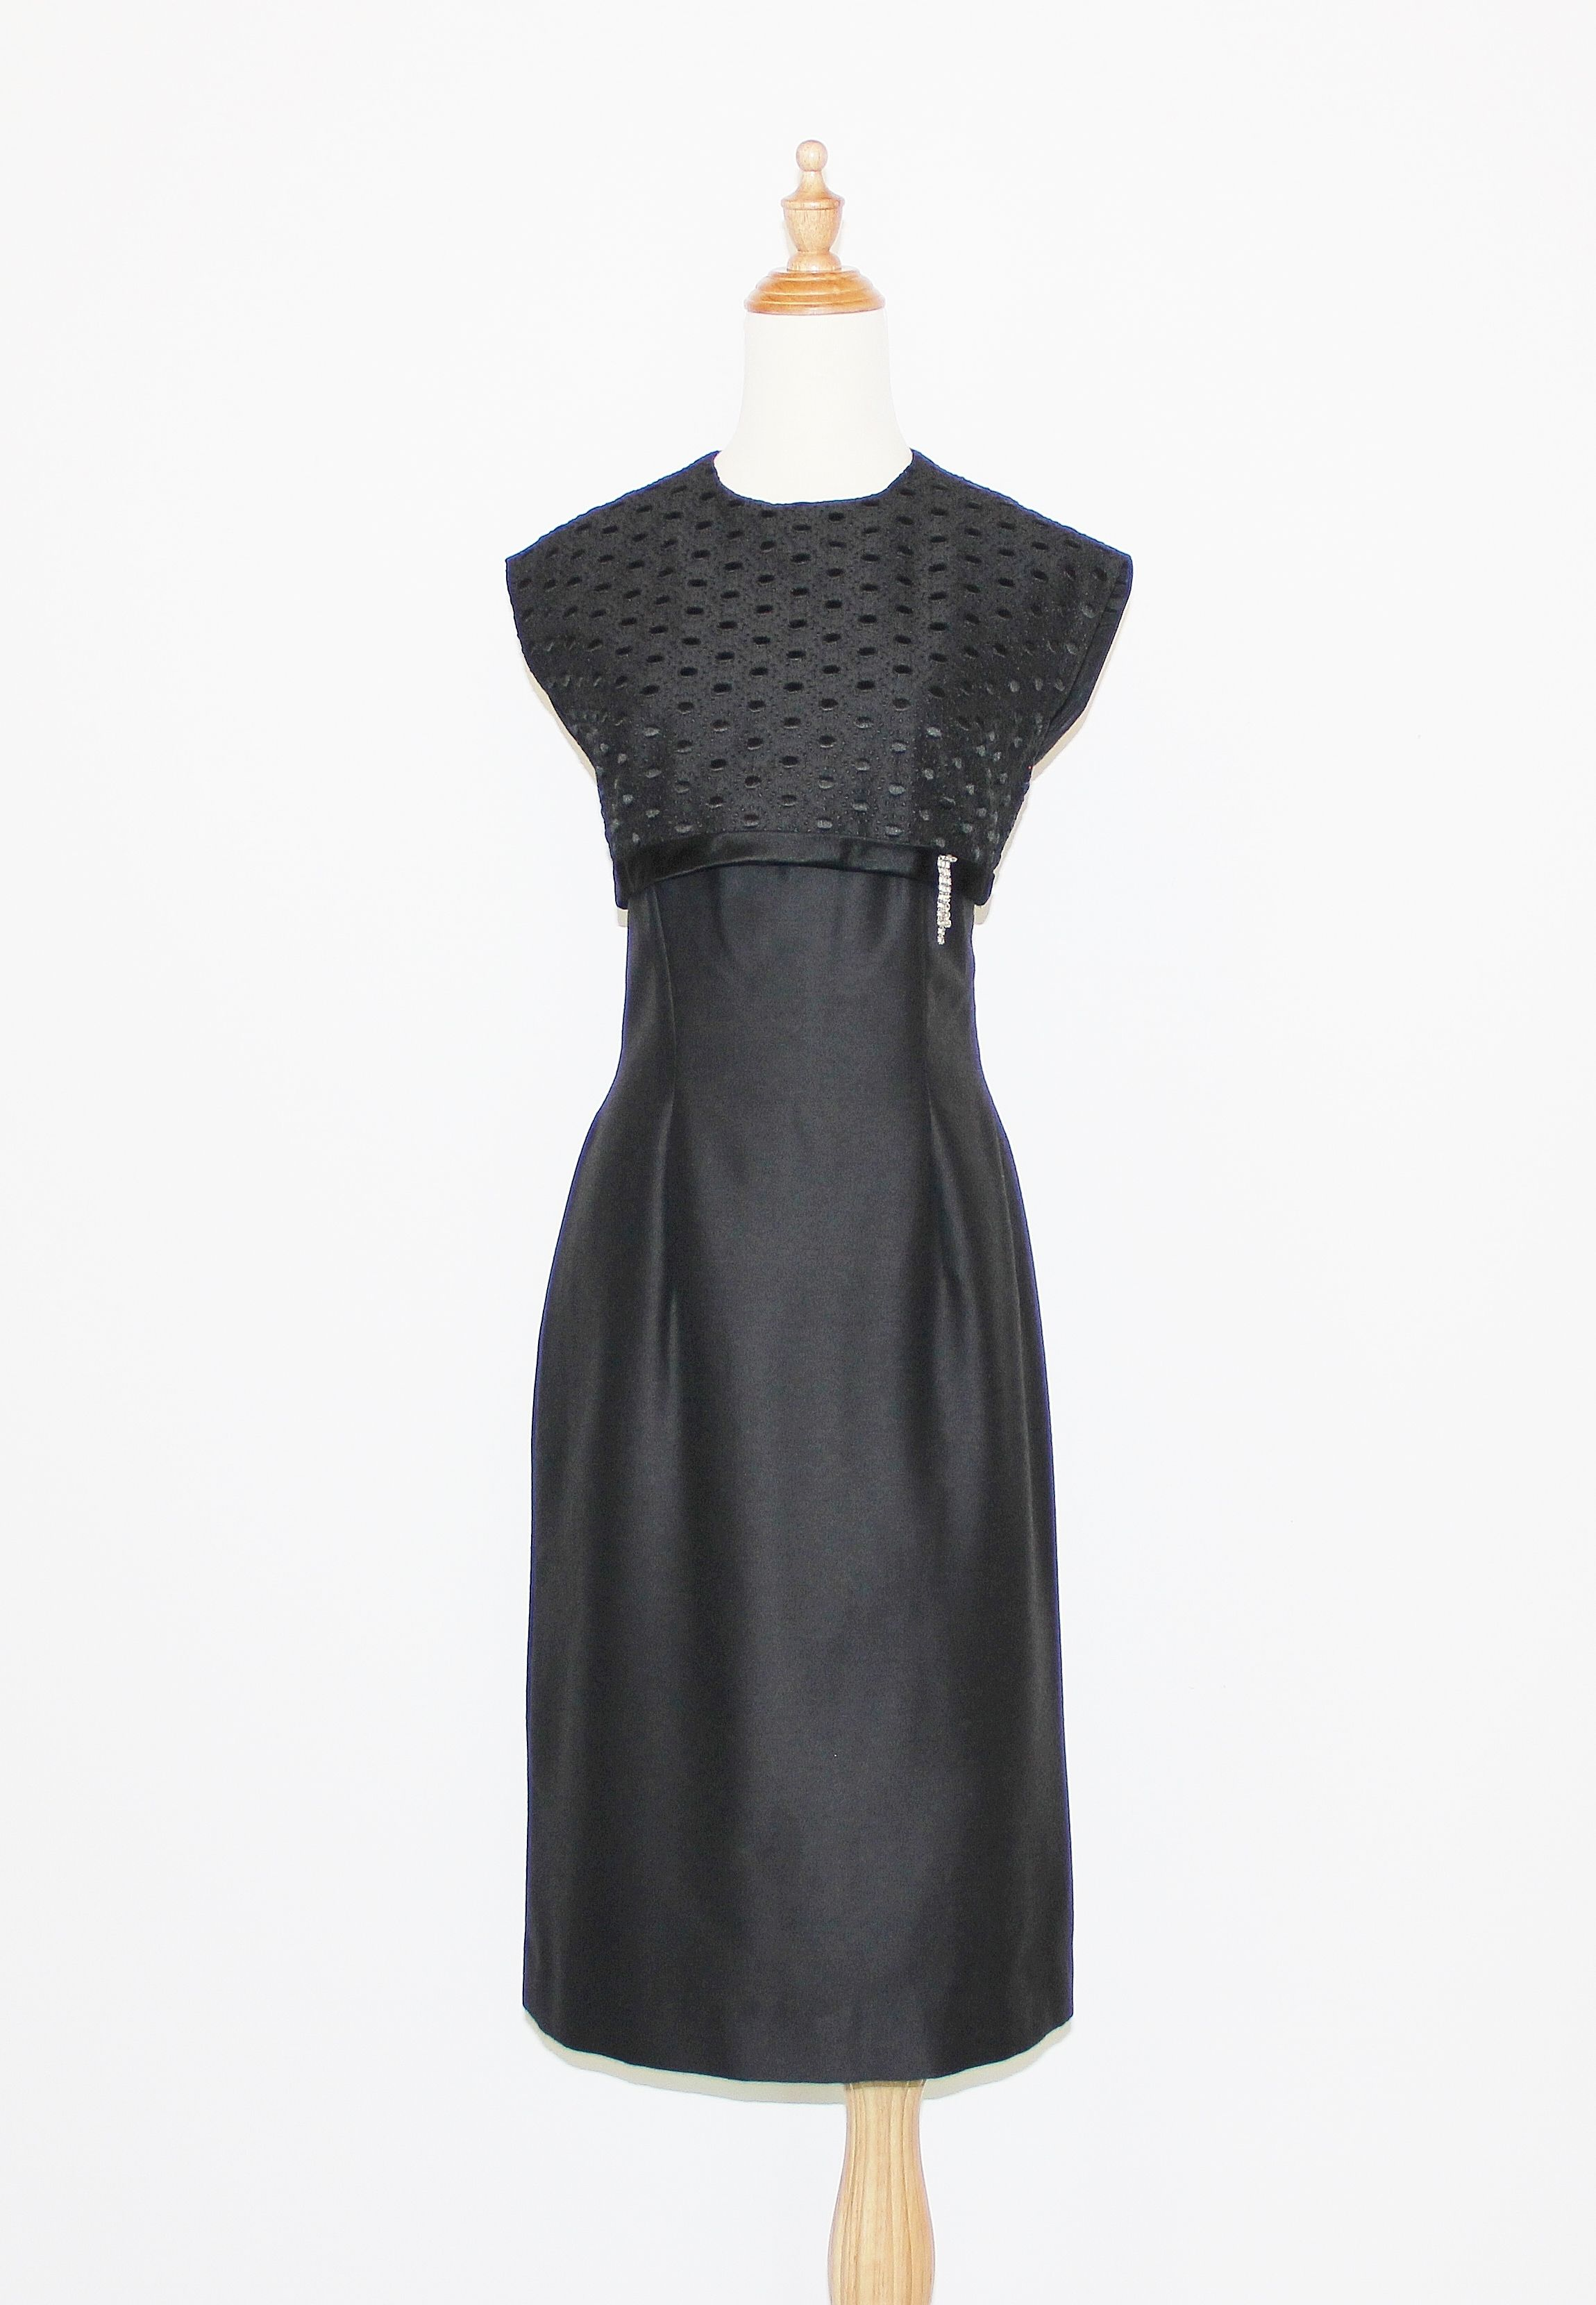 1960s Black Silk Alaskine Cocktail Dress With Embroidered Bust Overlay Trending Outfits Cocktail Dress Fashion [ 3320 x 2299 Pixel ]